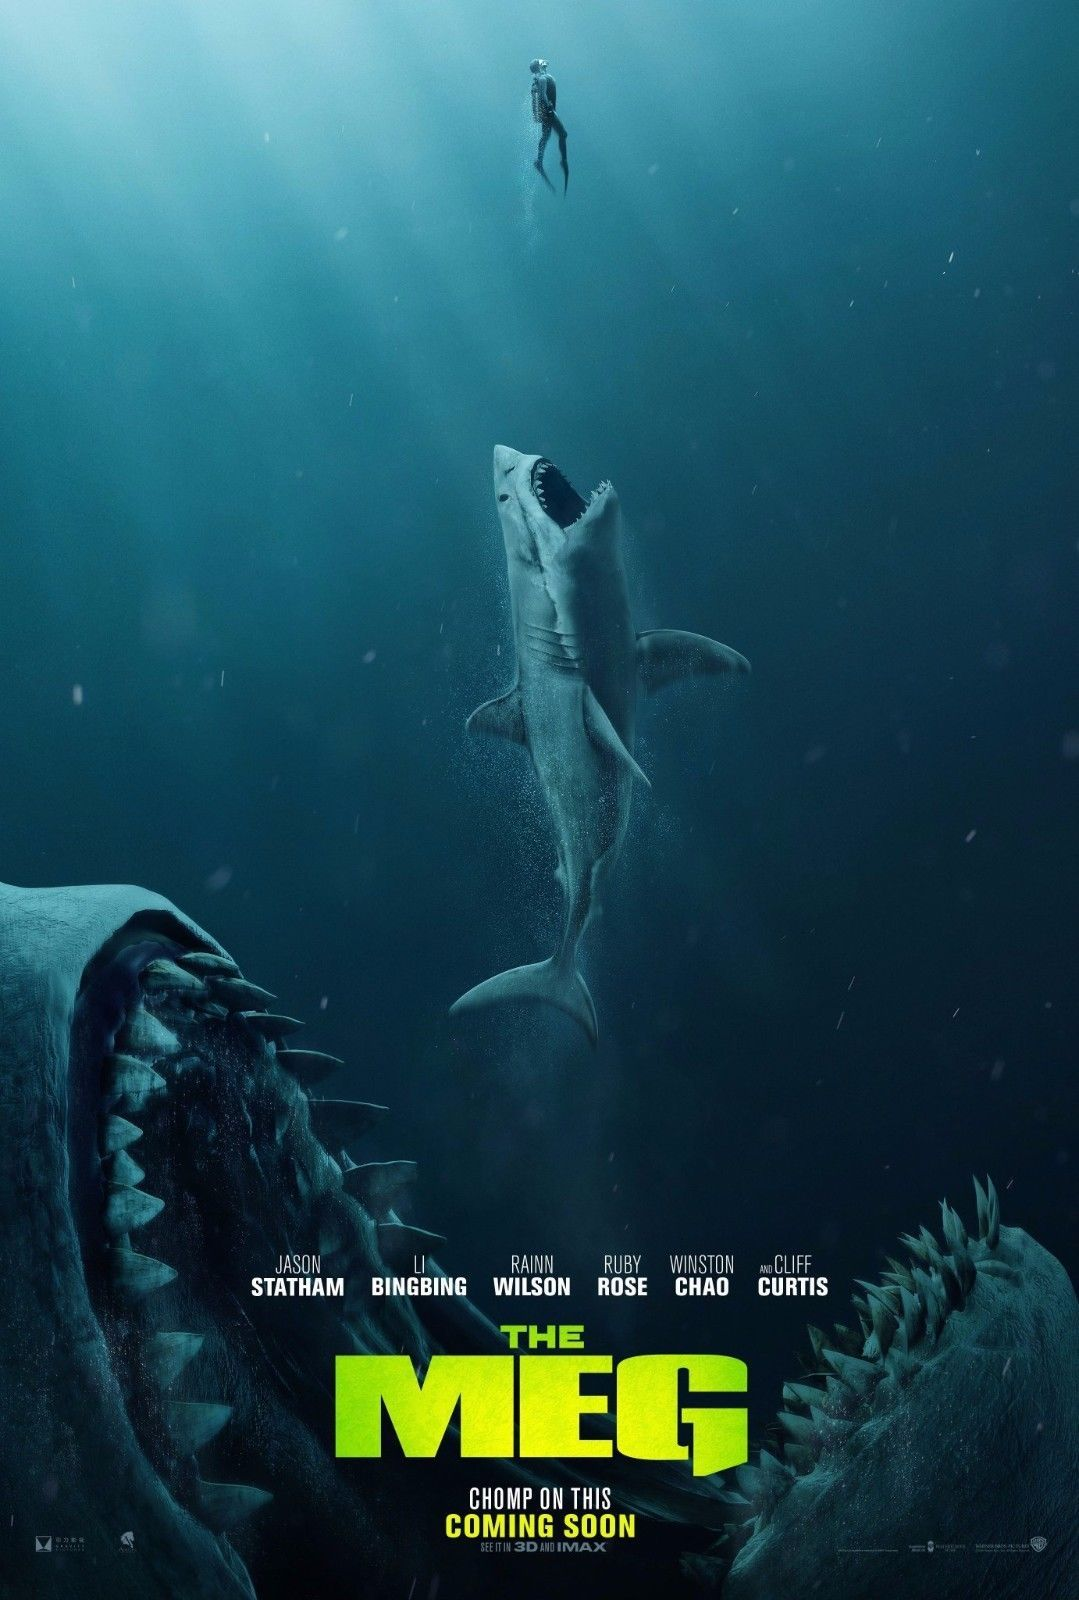 $11.38 - Sci-Fi Action Film The Meg Movie Fabric Wall Poster Art ...